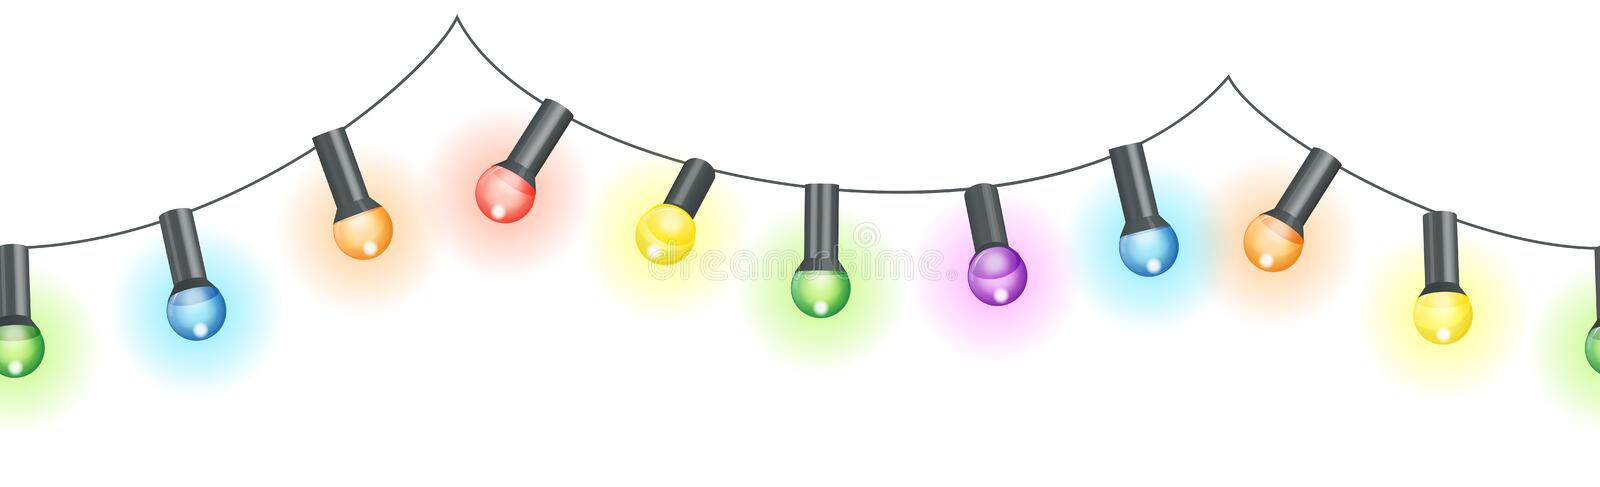 Colored light bulbs string. Vector illustration of seamless light bulbs string with different colors isolated on white background vector illustration